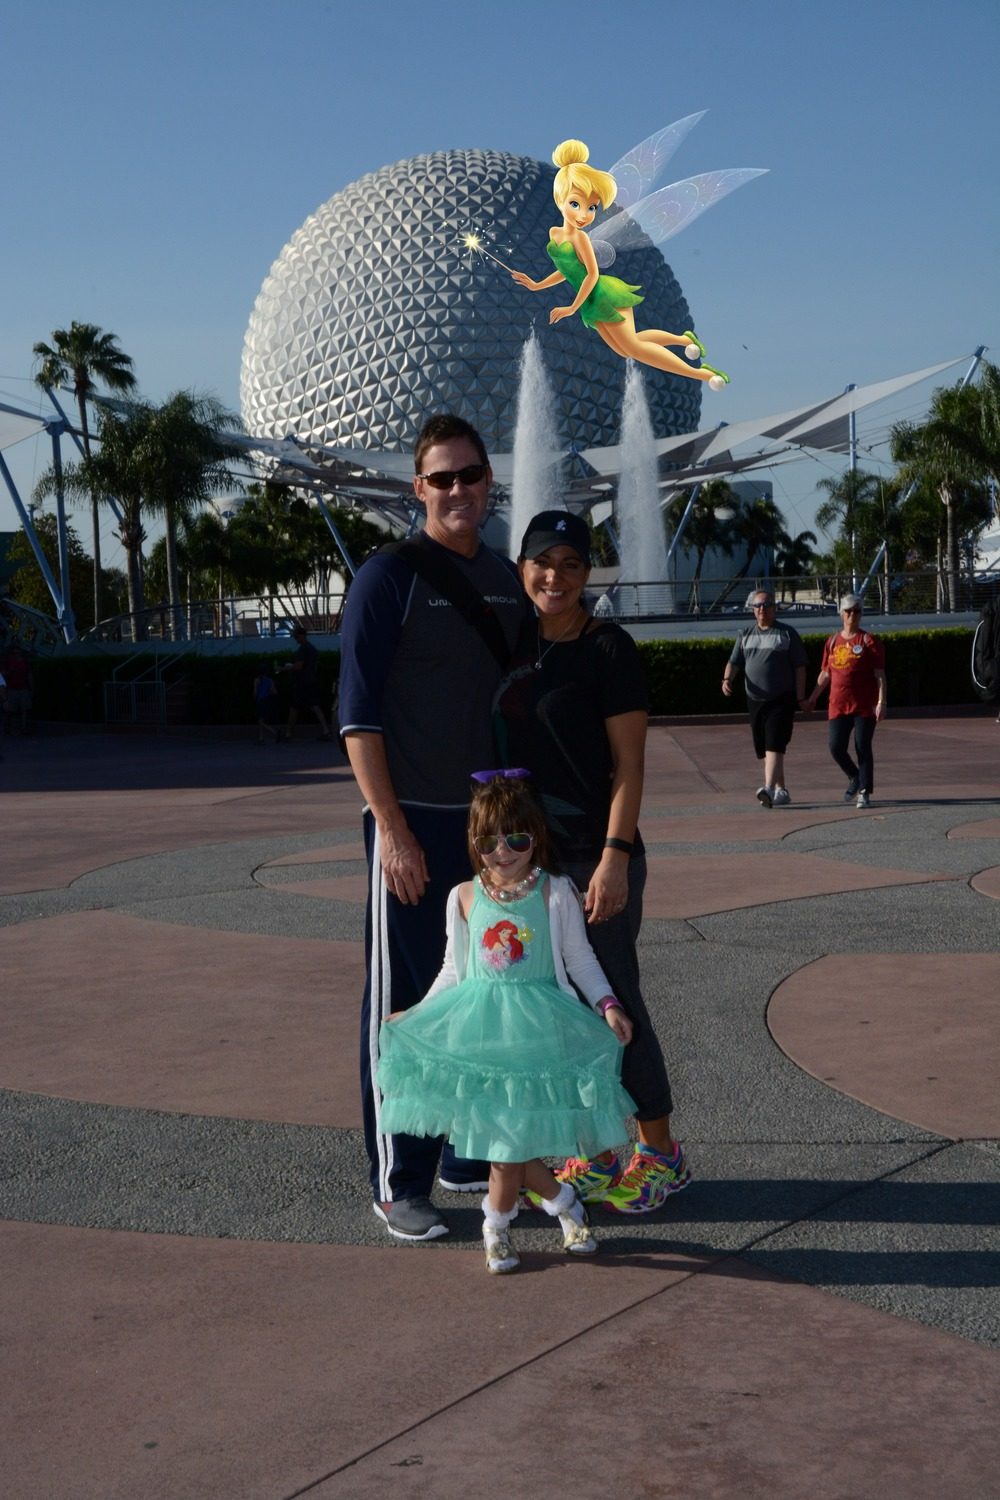 We spent a day in the Park and then a day recovering at our resort. This particular day we were at Epcot - which might be my favorite park! Tink followed us as our magical tour guide the whole way through!